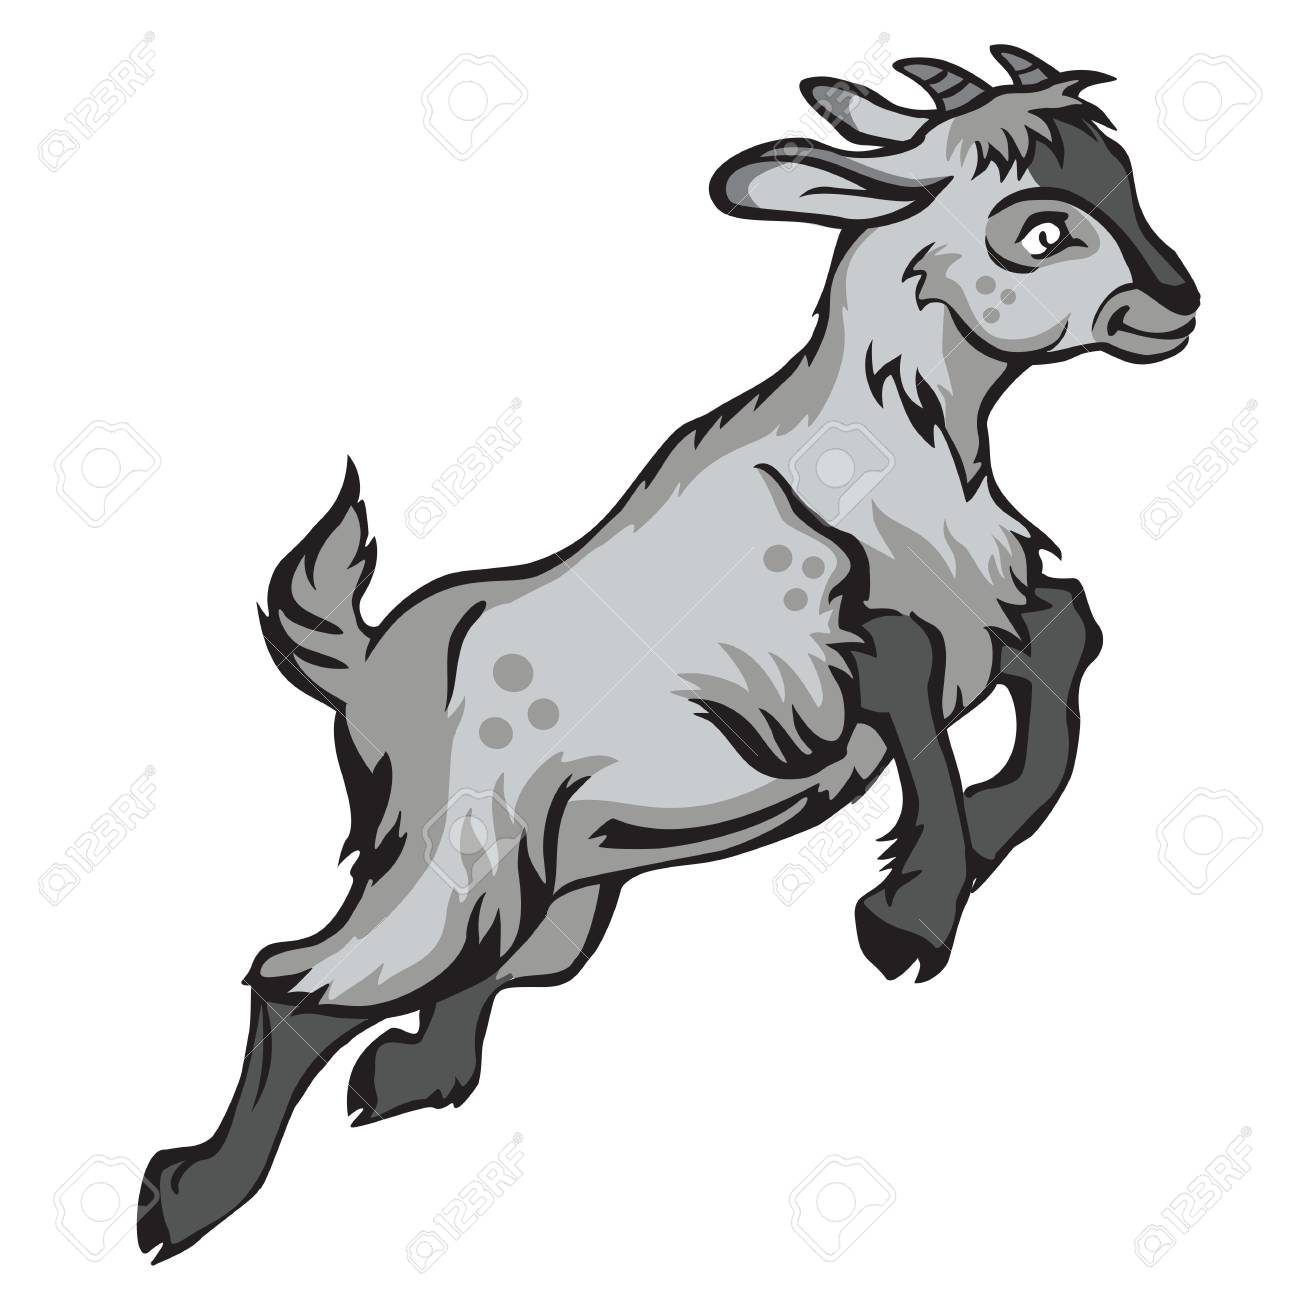 Goat clipart madden mobile. Free jumping download clip